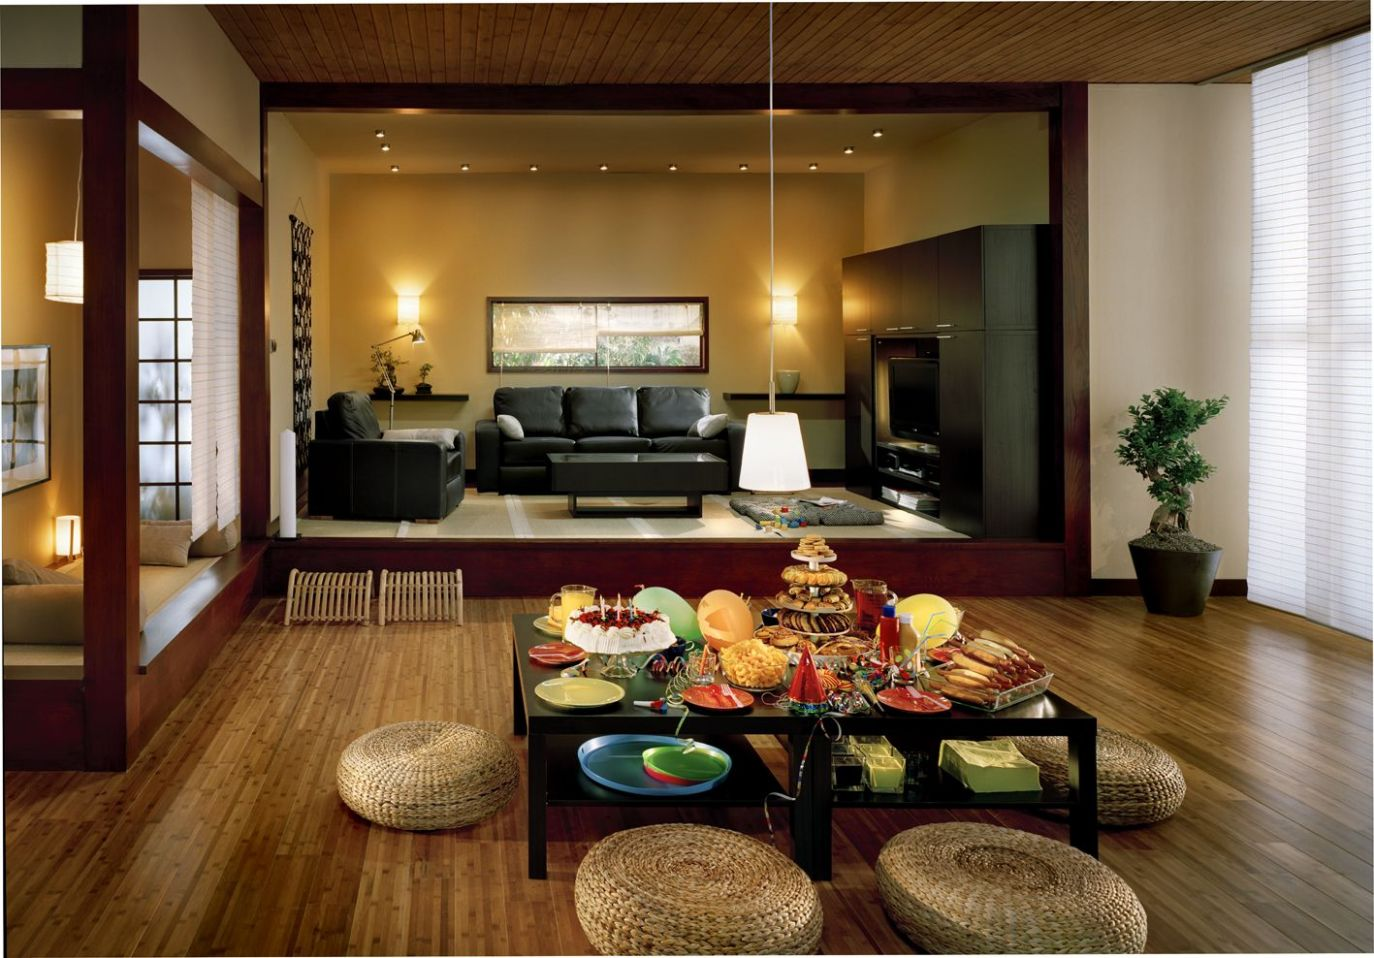 Modern day Living Room Decor Ideas (With images) | Japanese ..